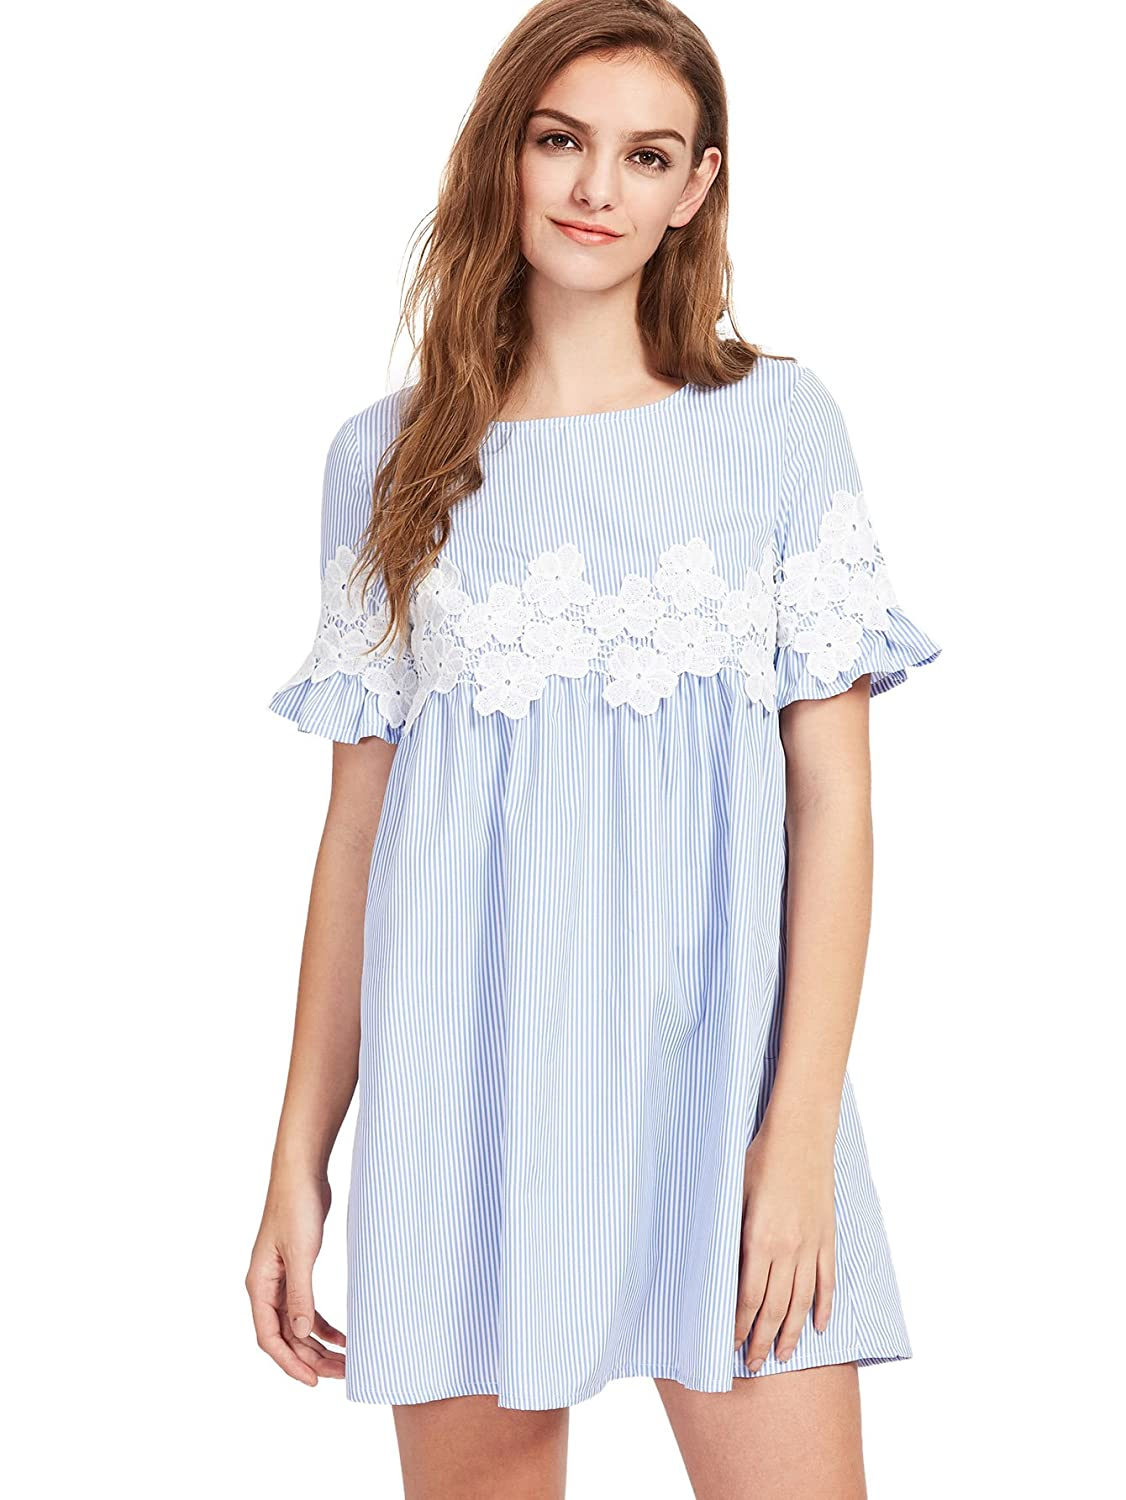 8b6107b34b977 ROMWE Women's Striped Floral Lace Ruffle Short Sleeve Babydoll A Line Dress  at Amazon Women's Clothing store: